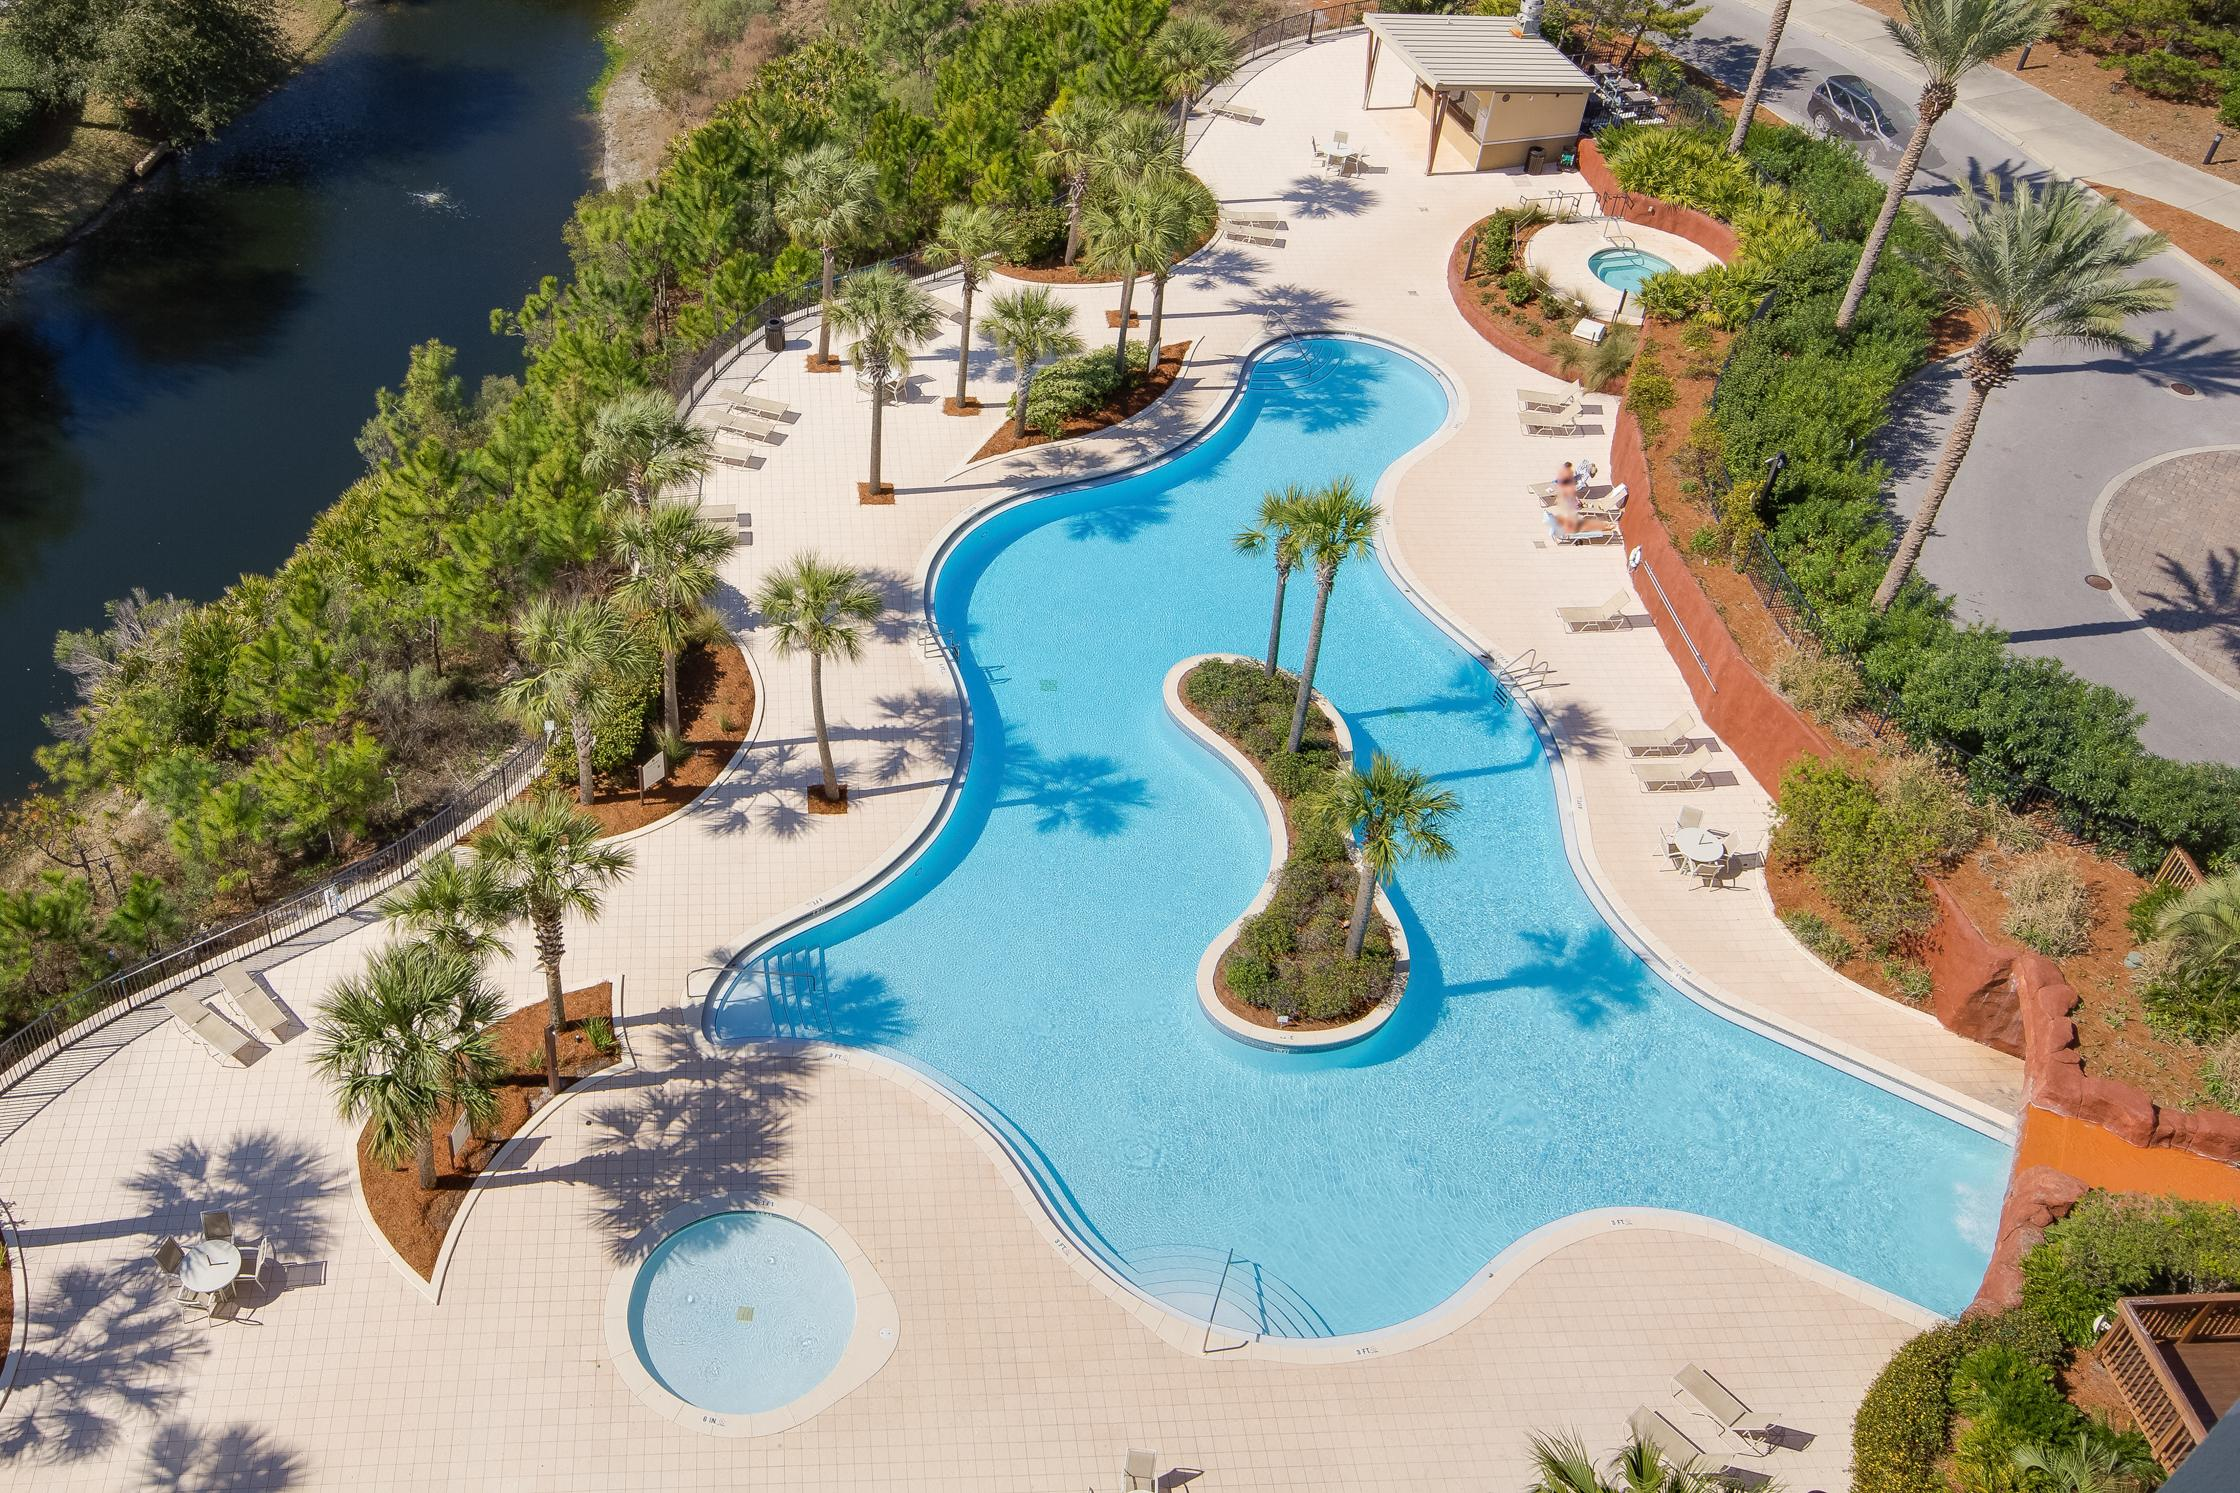 The immaculate grounds feature numerous resort-style pools.